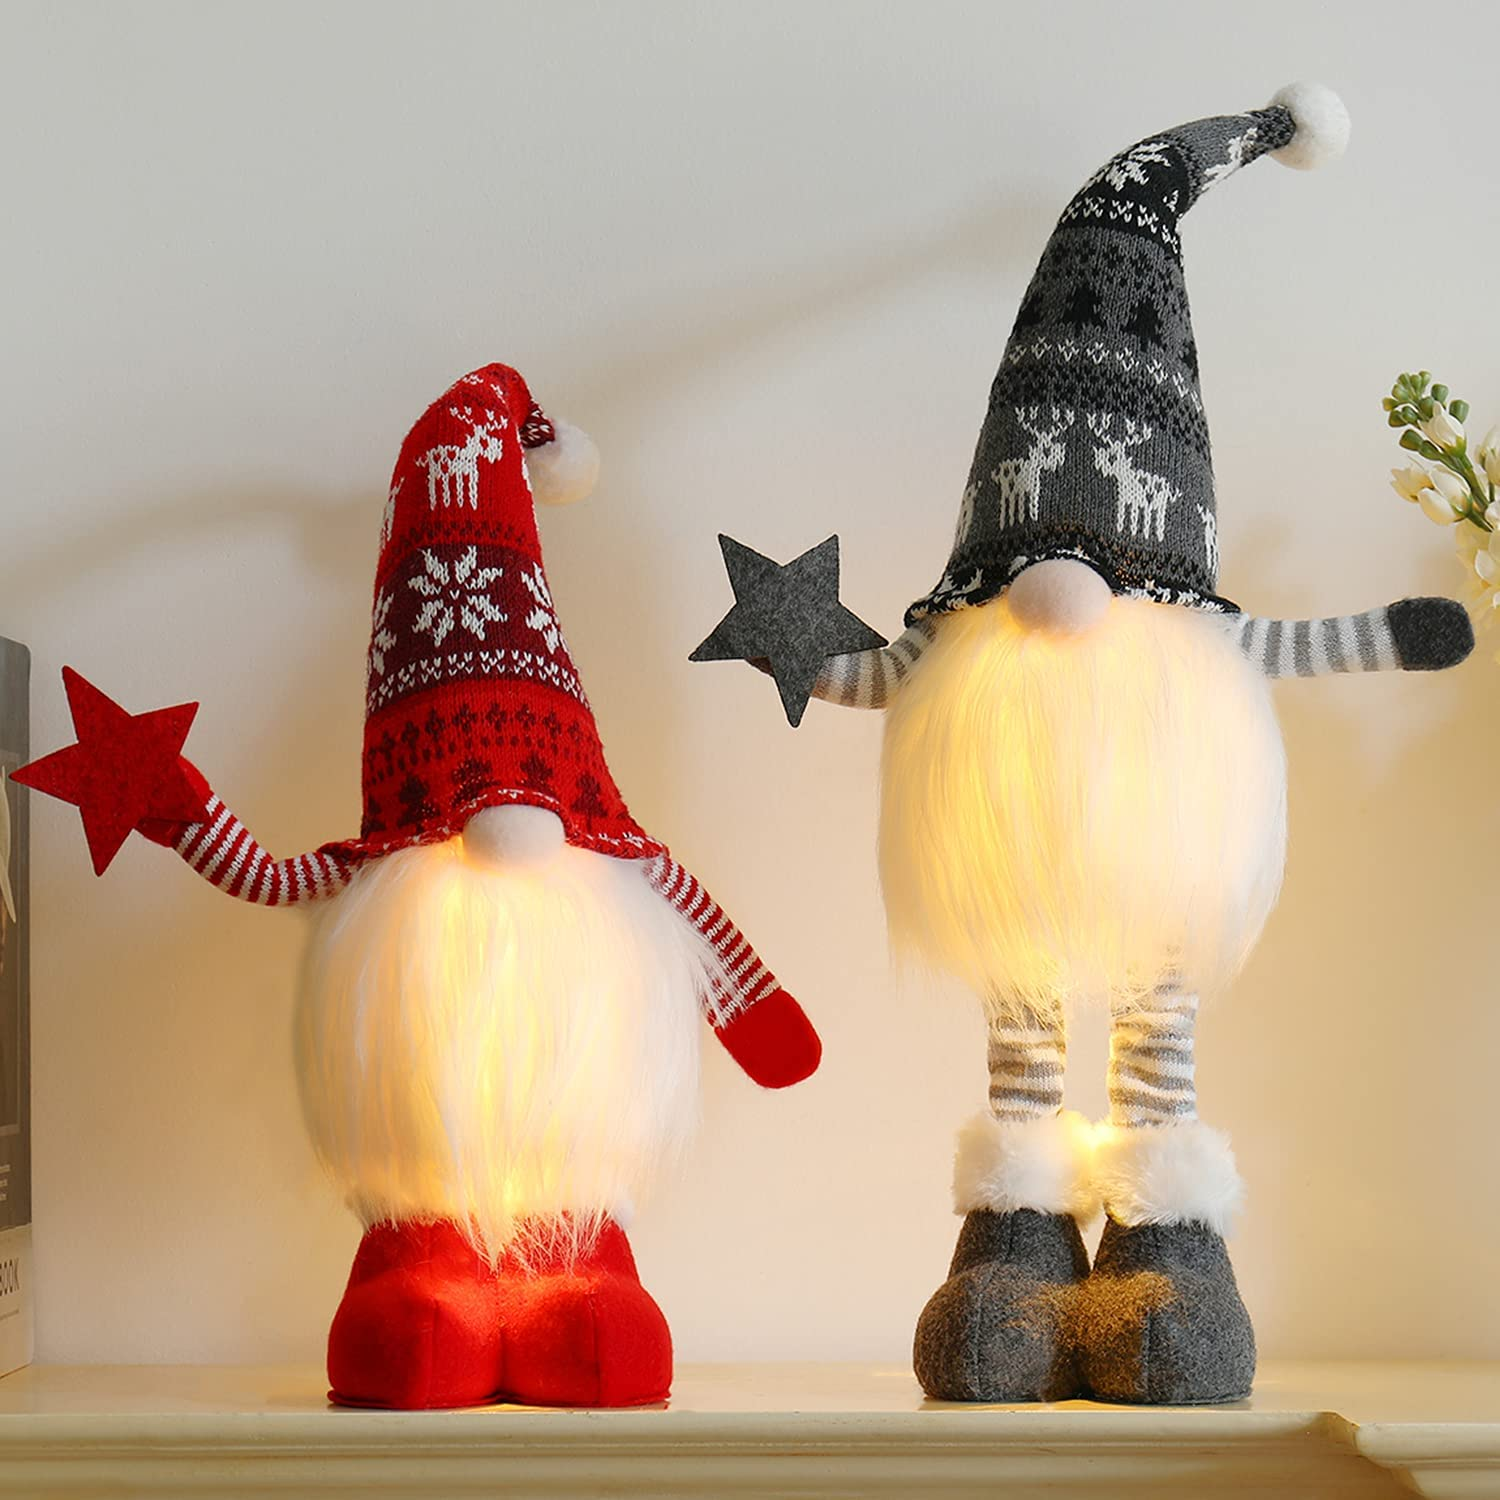 2pc Lighted Standing Christmas Gnomes Decorations with Retractable Spring Legs Light up Christmas Knome Gift for Home Decor